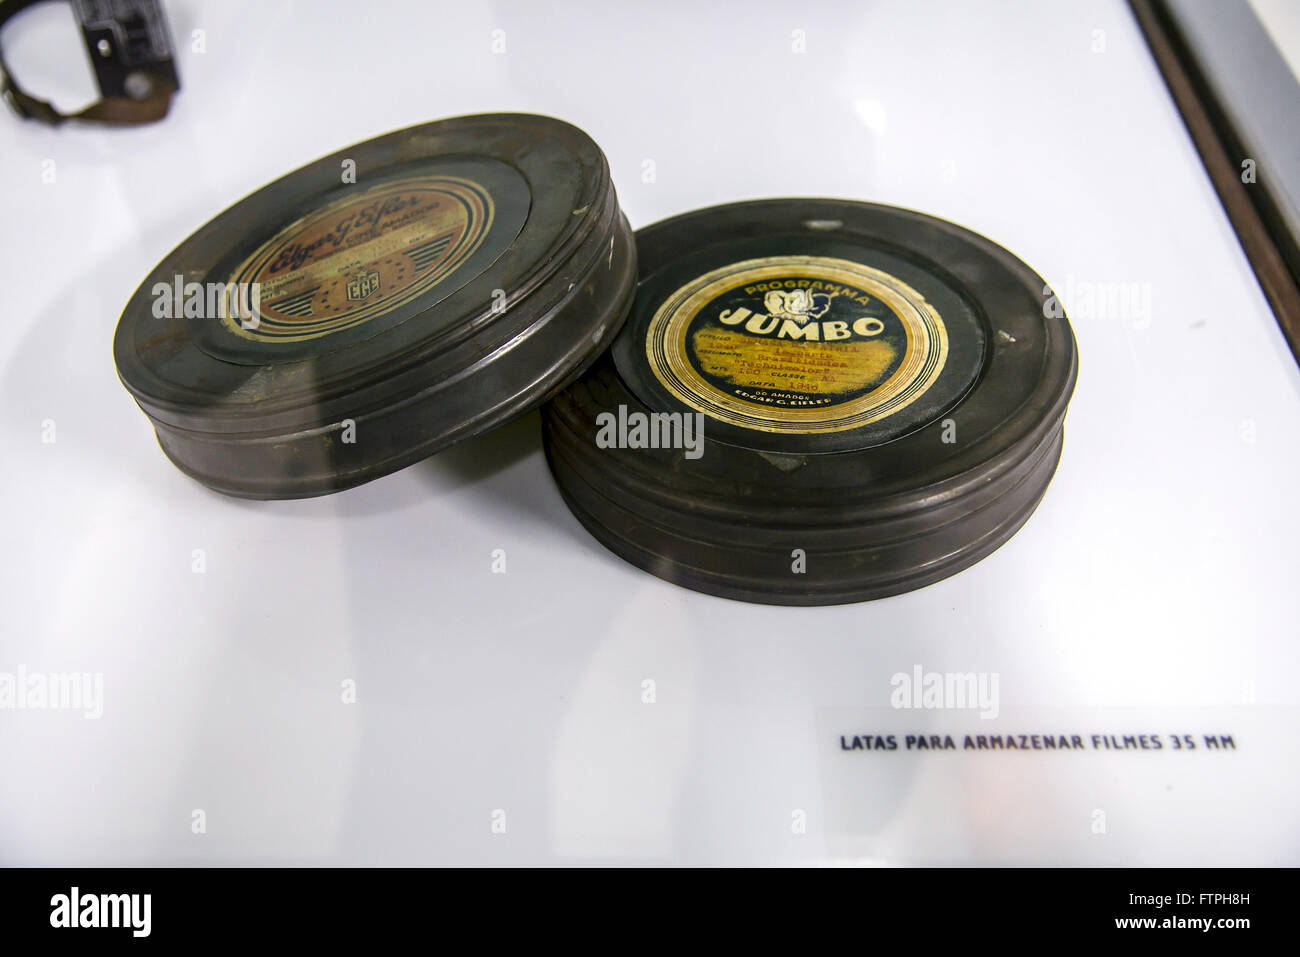 Storage Cans for 35 mm films 1940 - Stock Image